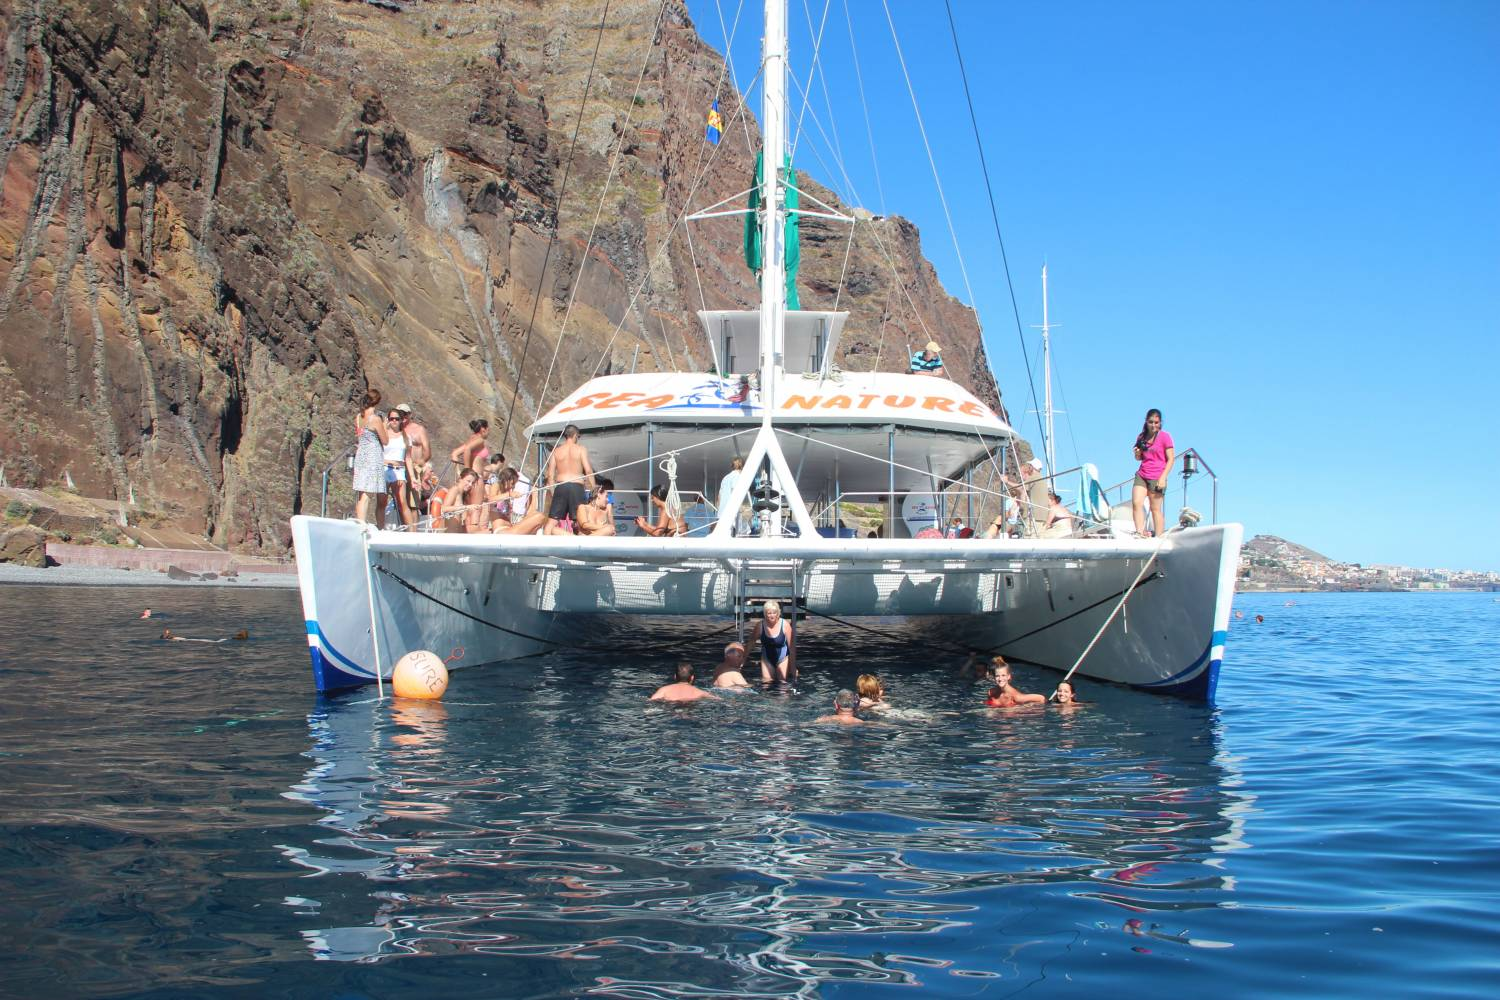 Catamaran Tour in Madeira Island